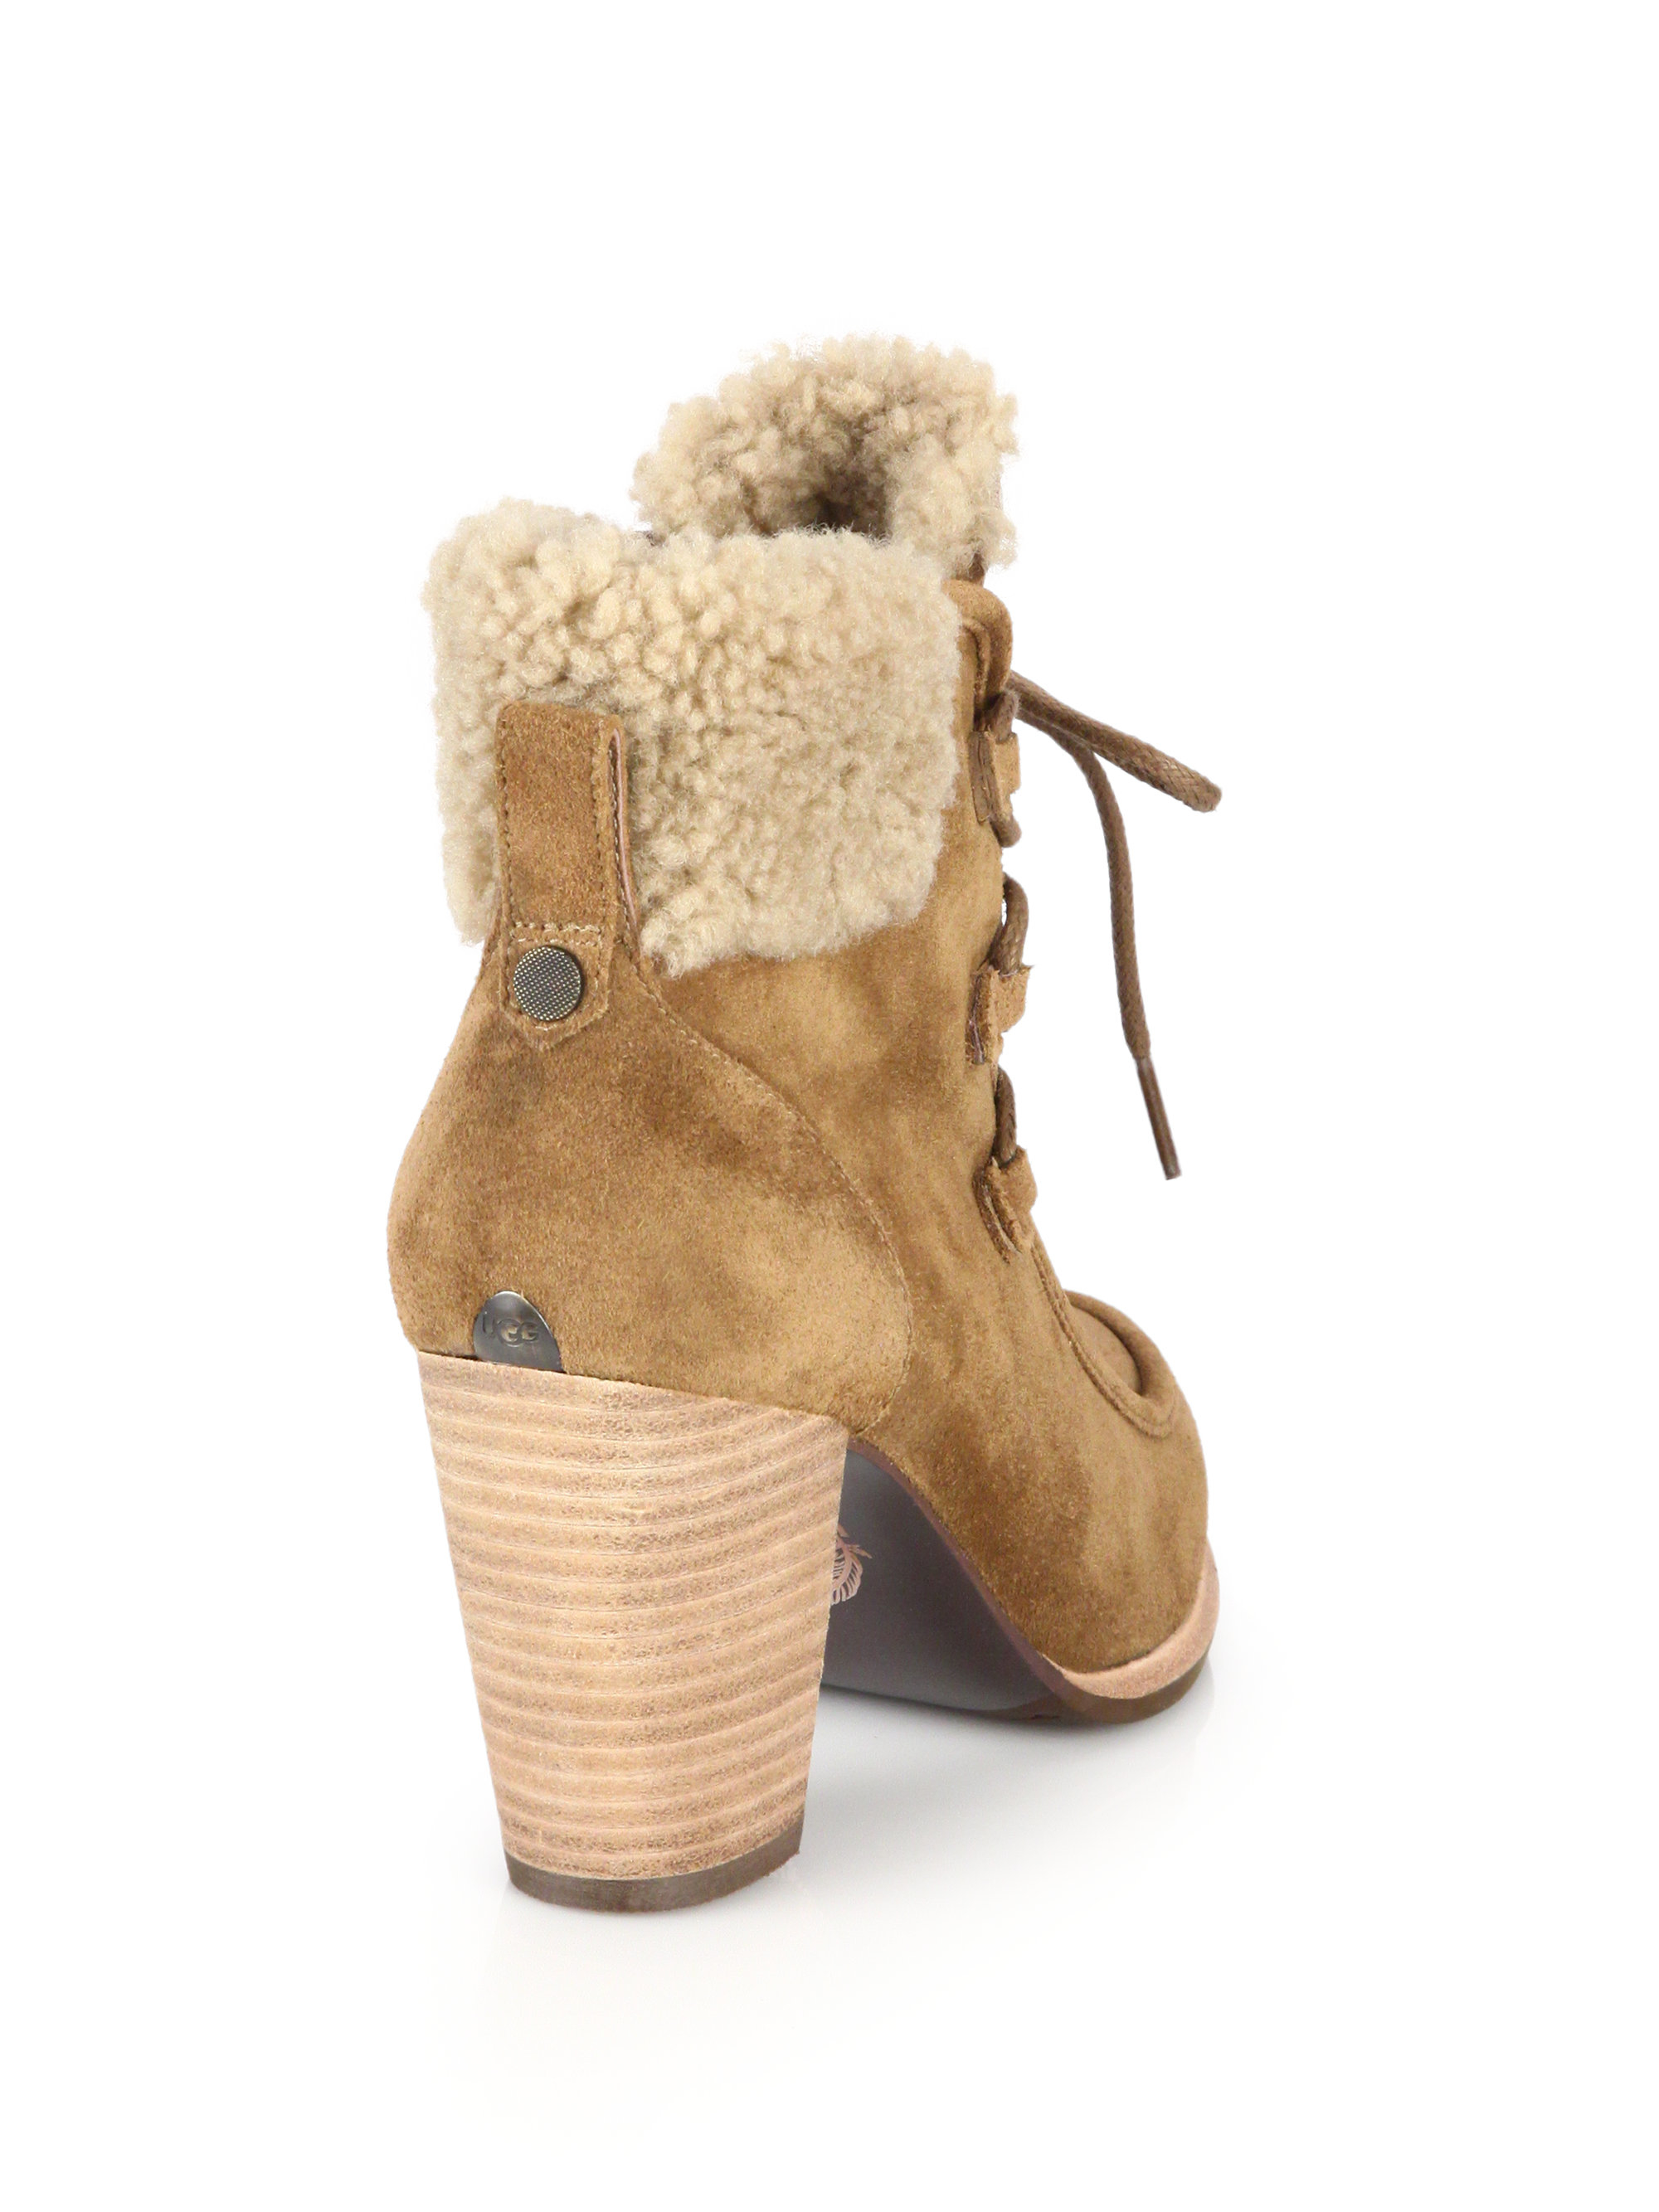 Do Ugg Shoes Run Big Or Small